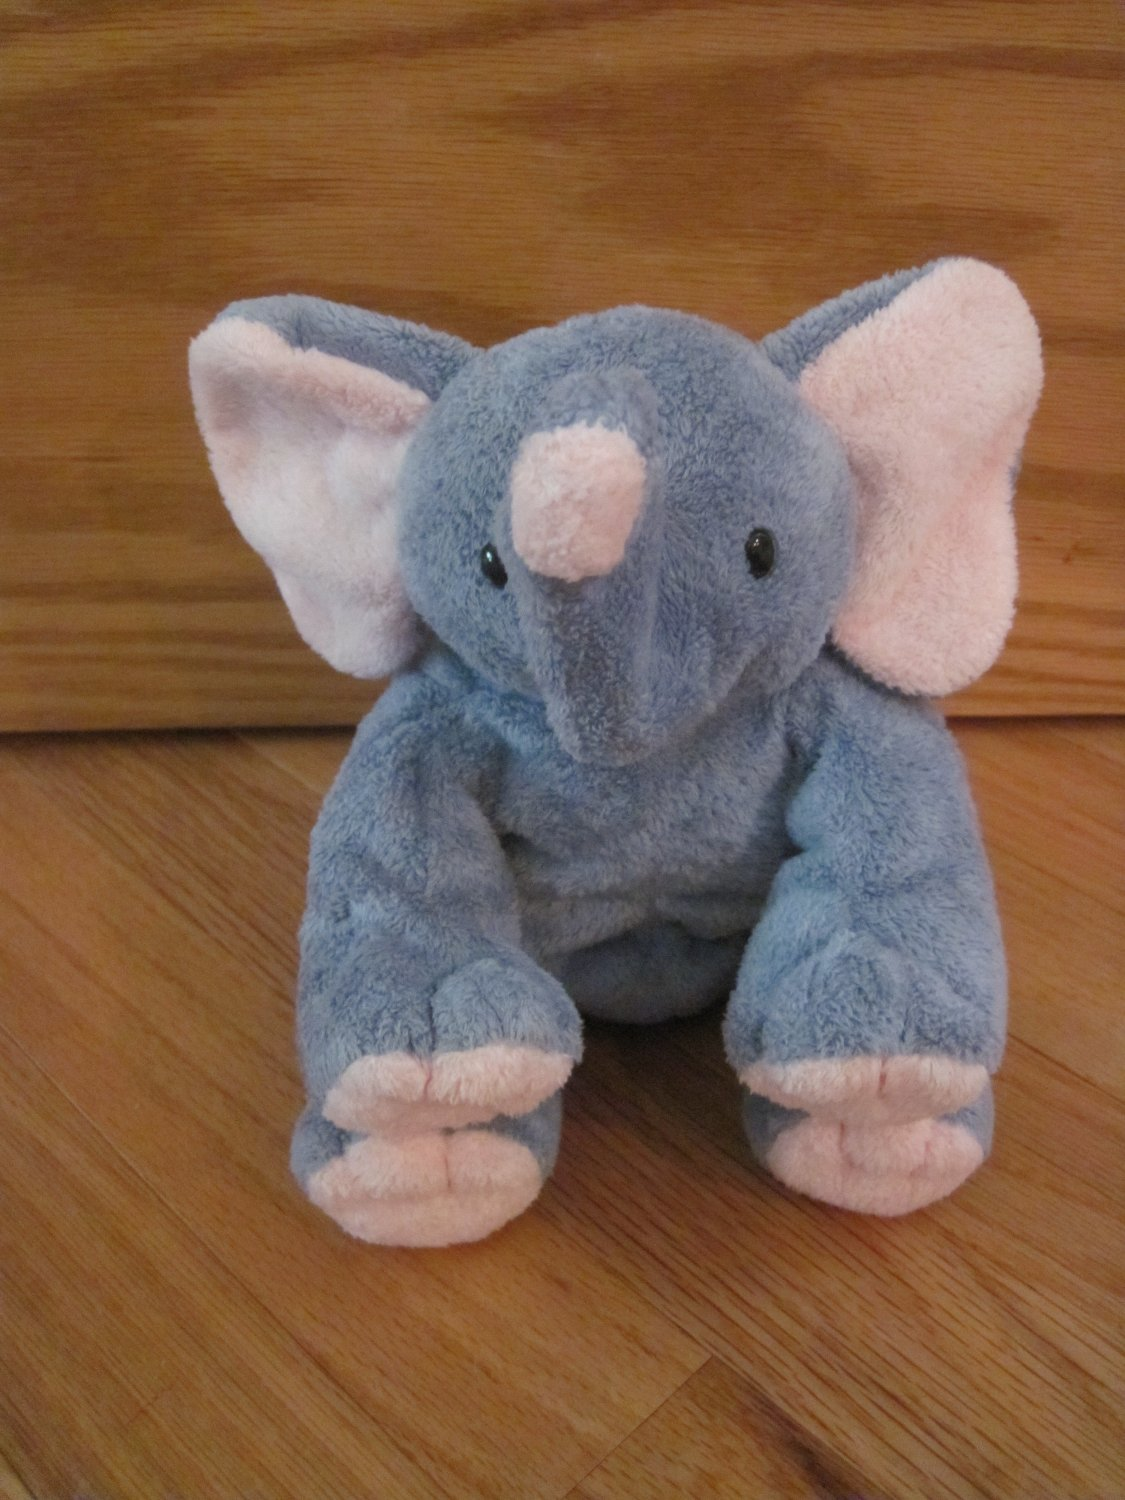 Ty Pluffies Plush Gray & Pink Elephant Named Winks Tylux 2002